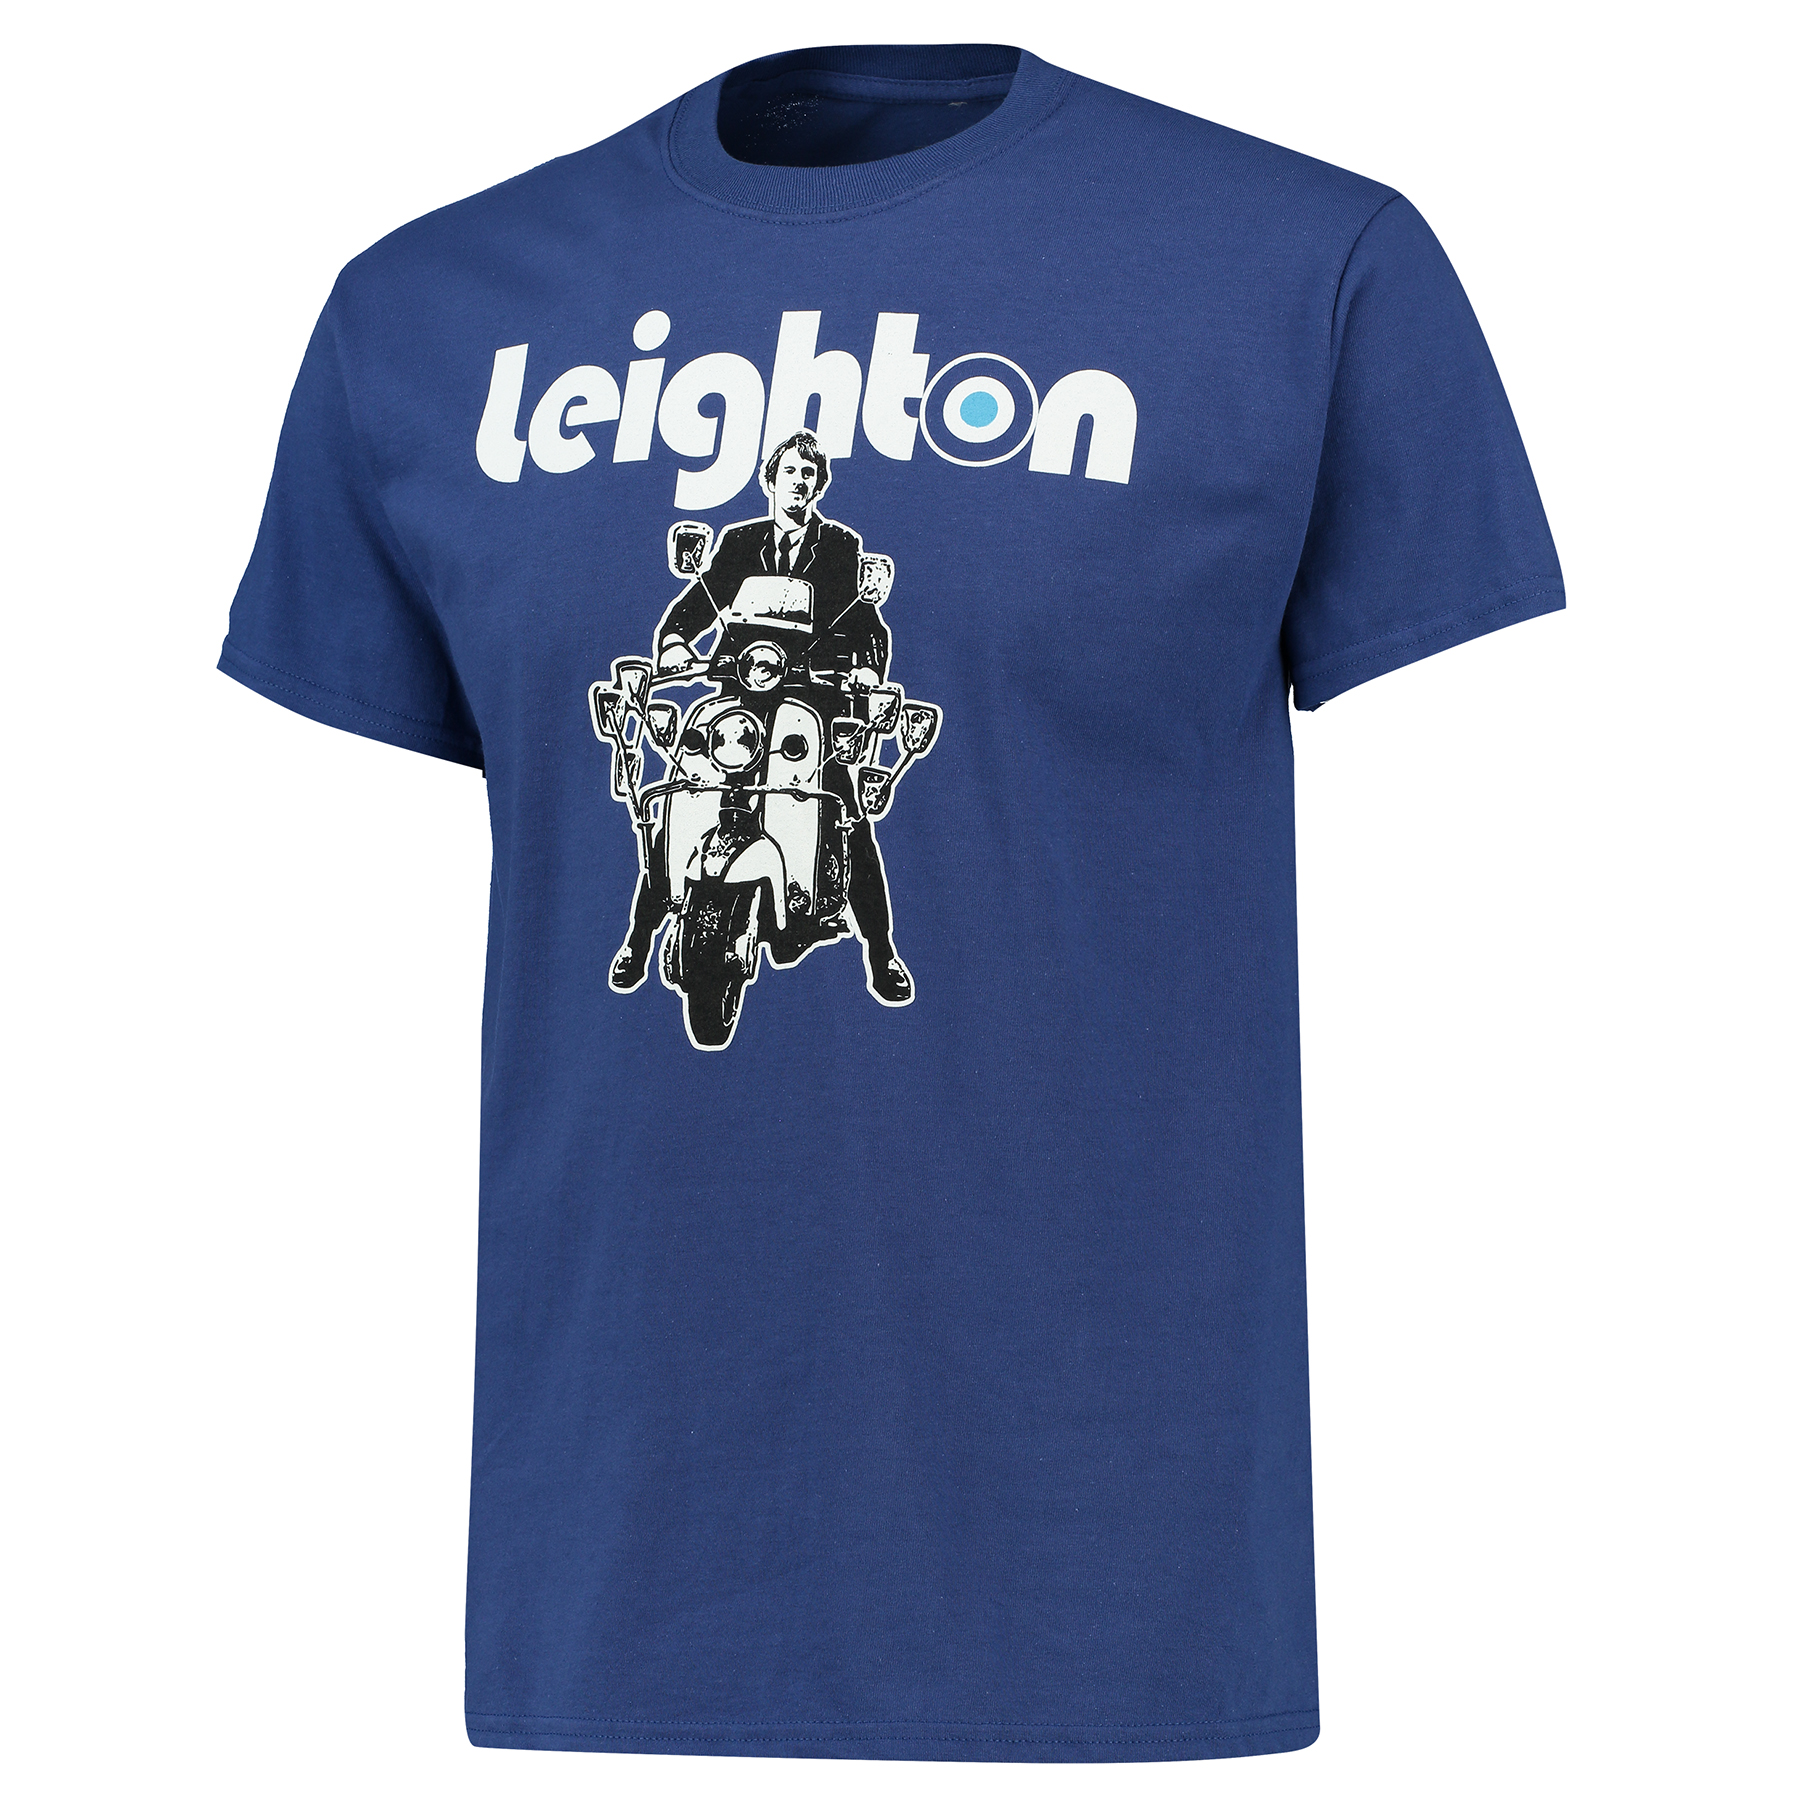 Everton 2for20 Mod Leighton T-Shirt